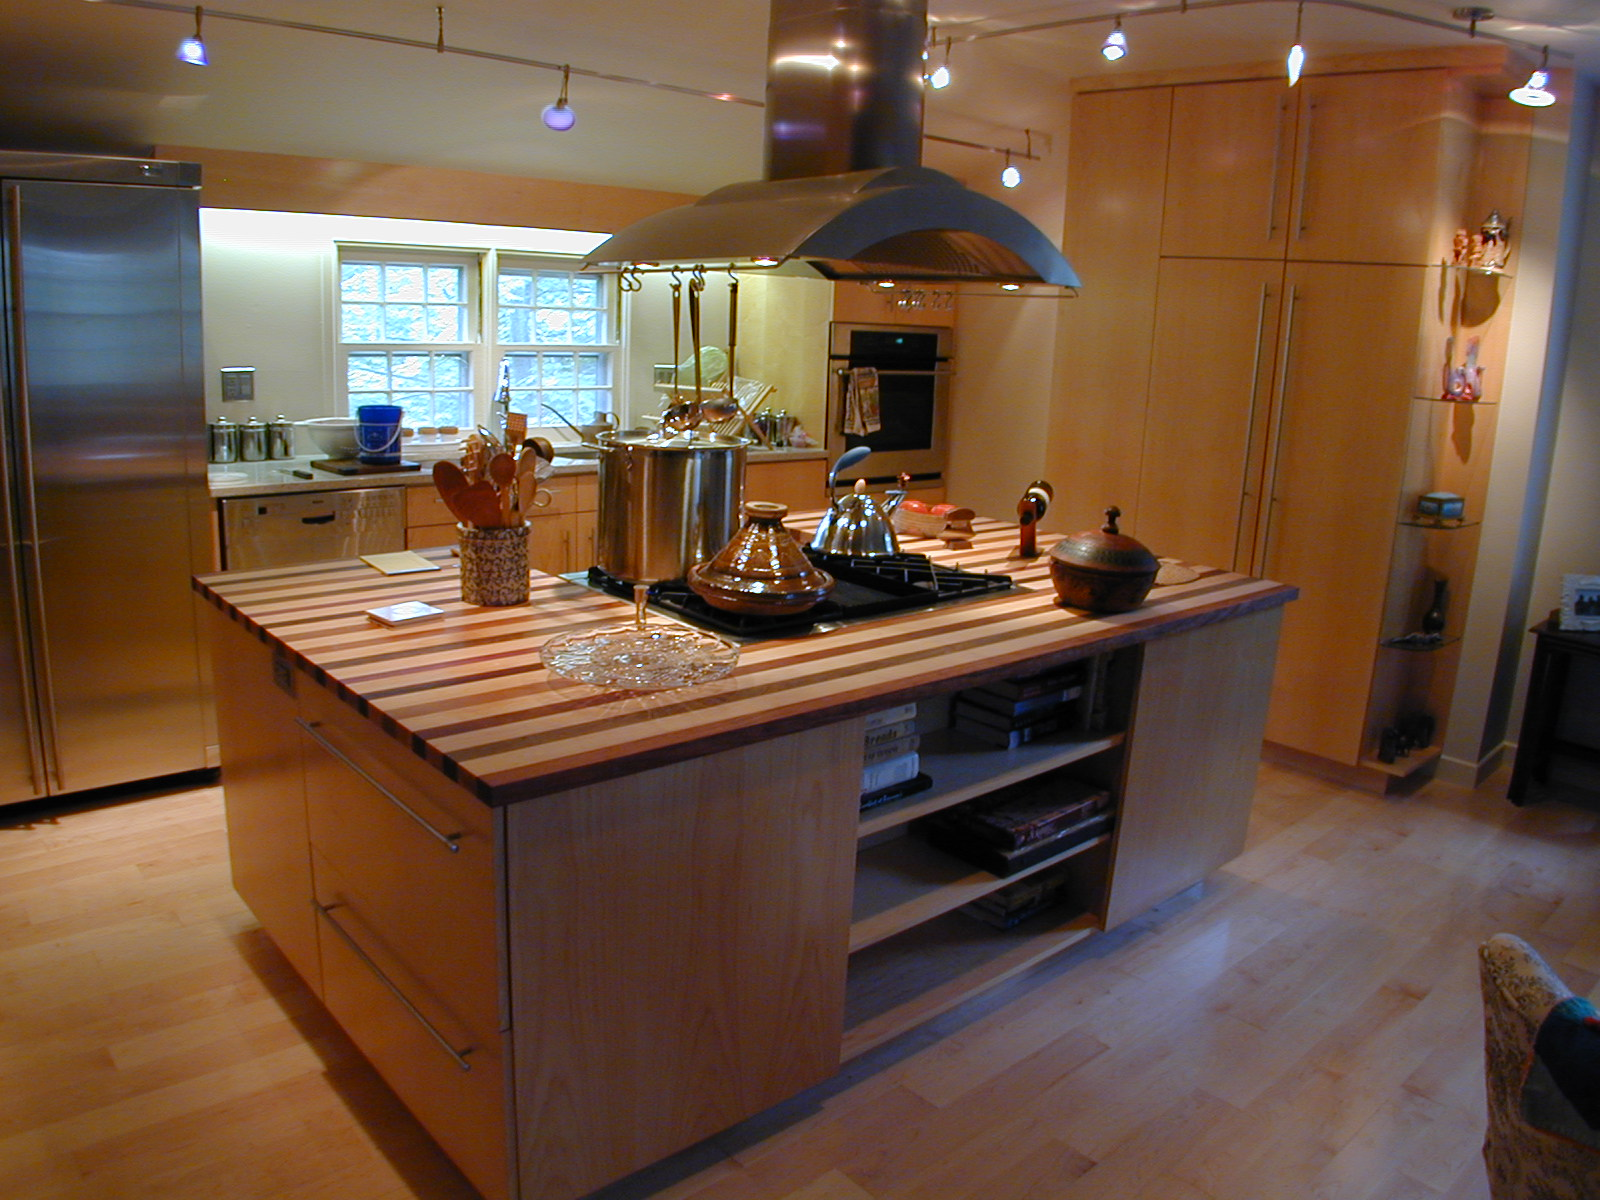 A Thoroughly Modern Kitchen